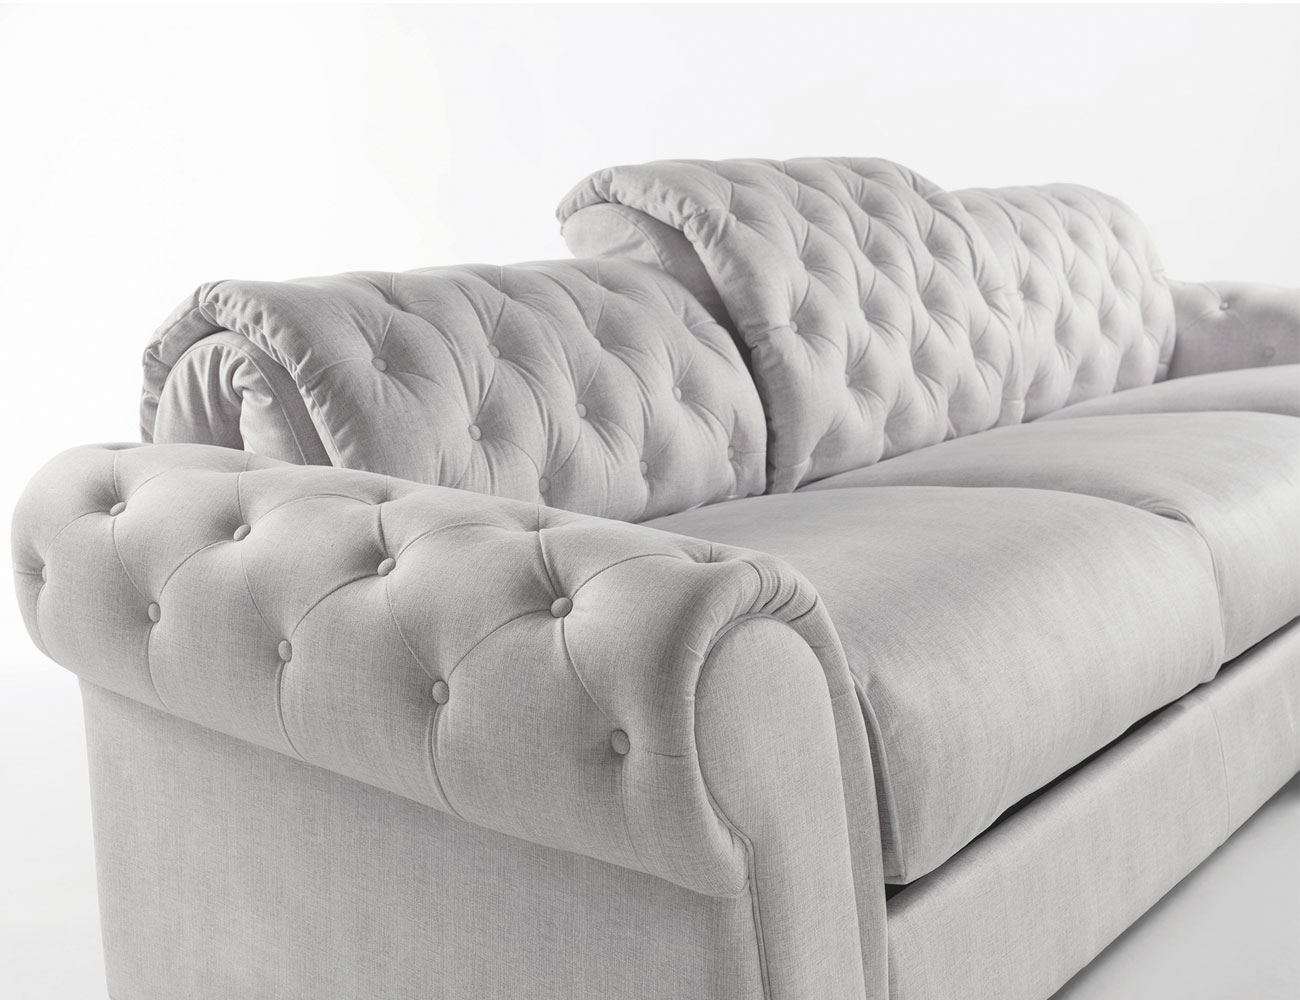 Sofa chaiselongue gran lujo decorativo capitone blanco tela 150